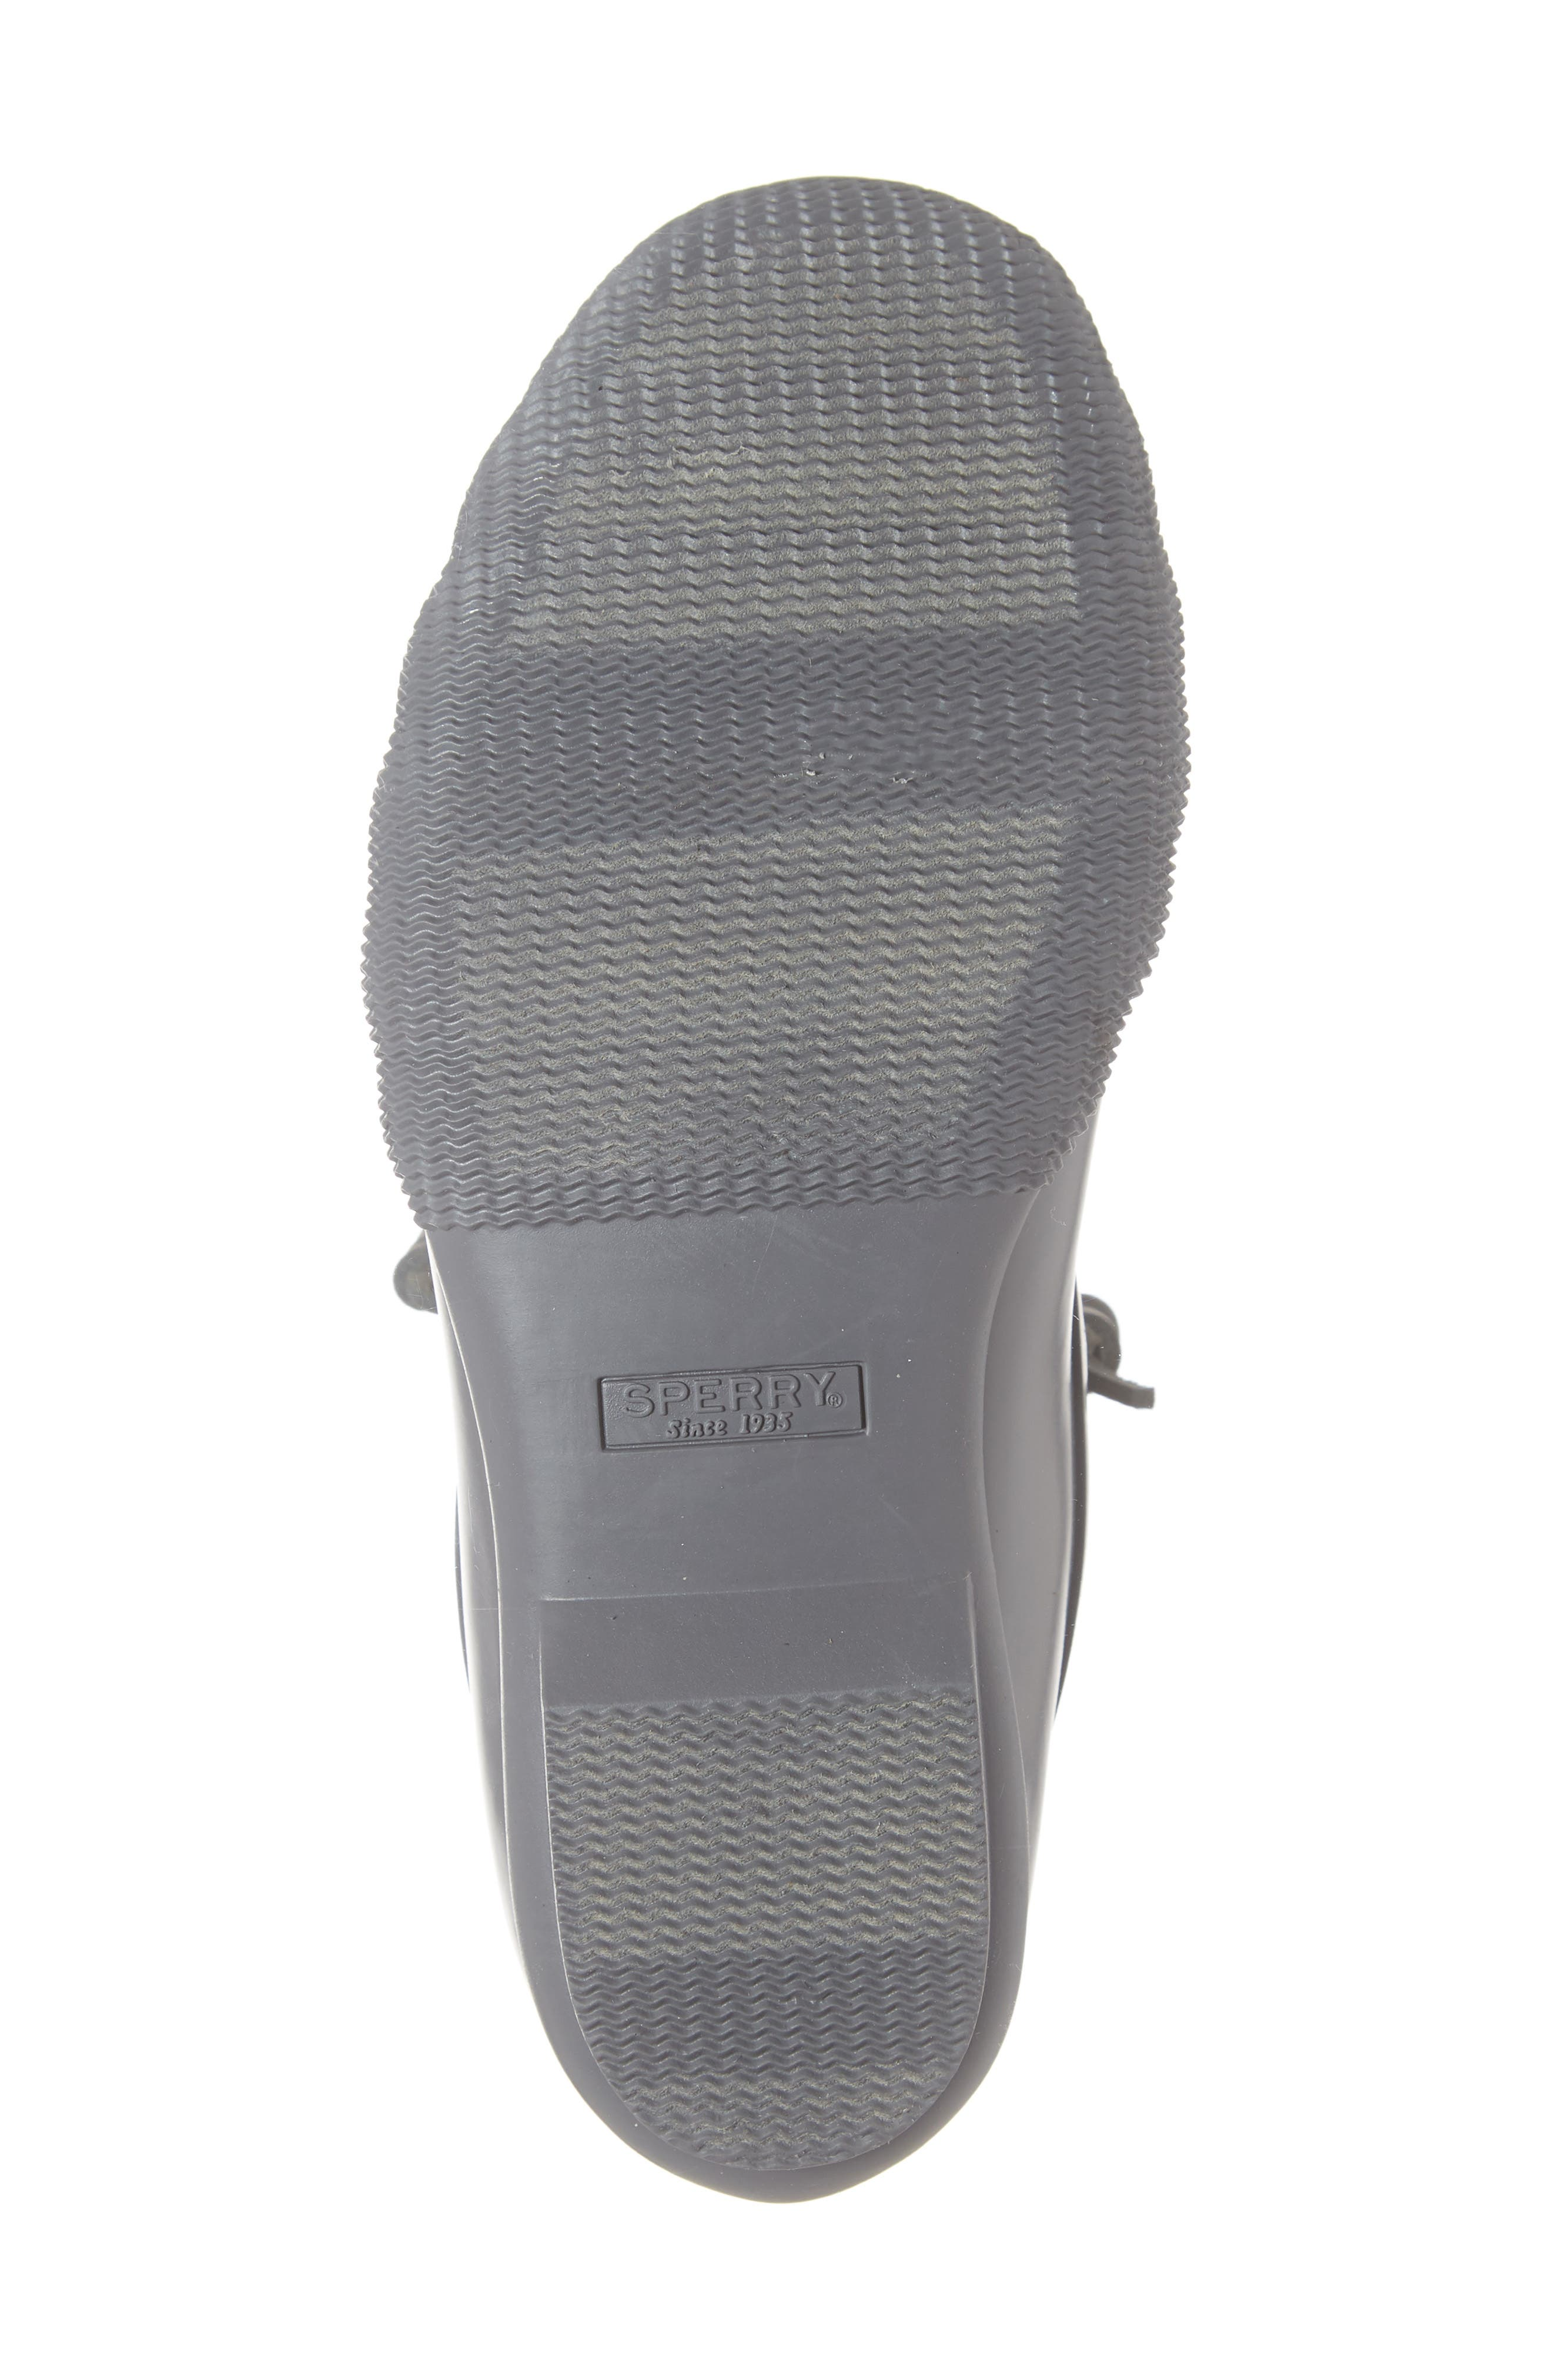 Flooded Rubber Saltwater Bootie,                             Alternate thumbnail 6, color,                             GREY